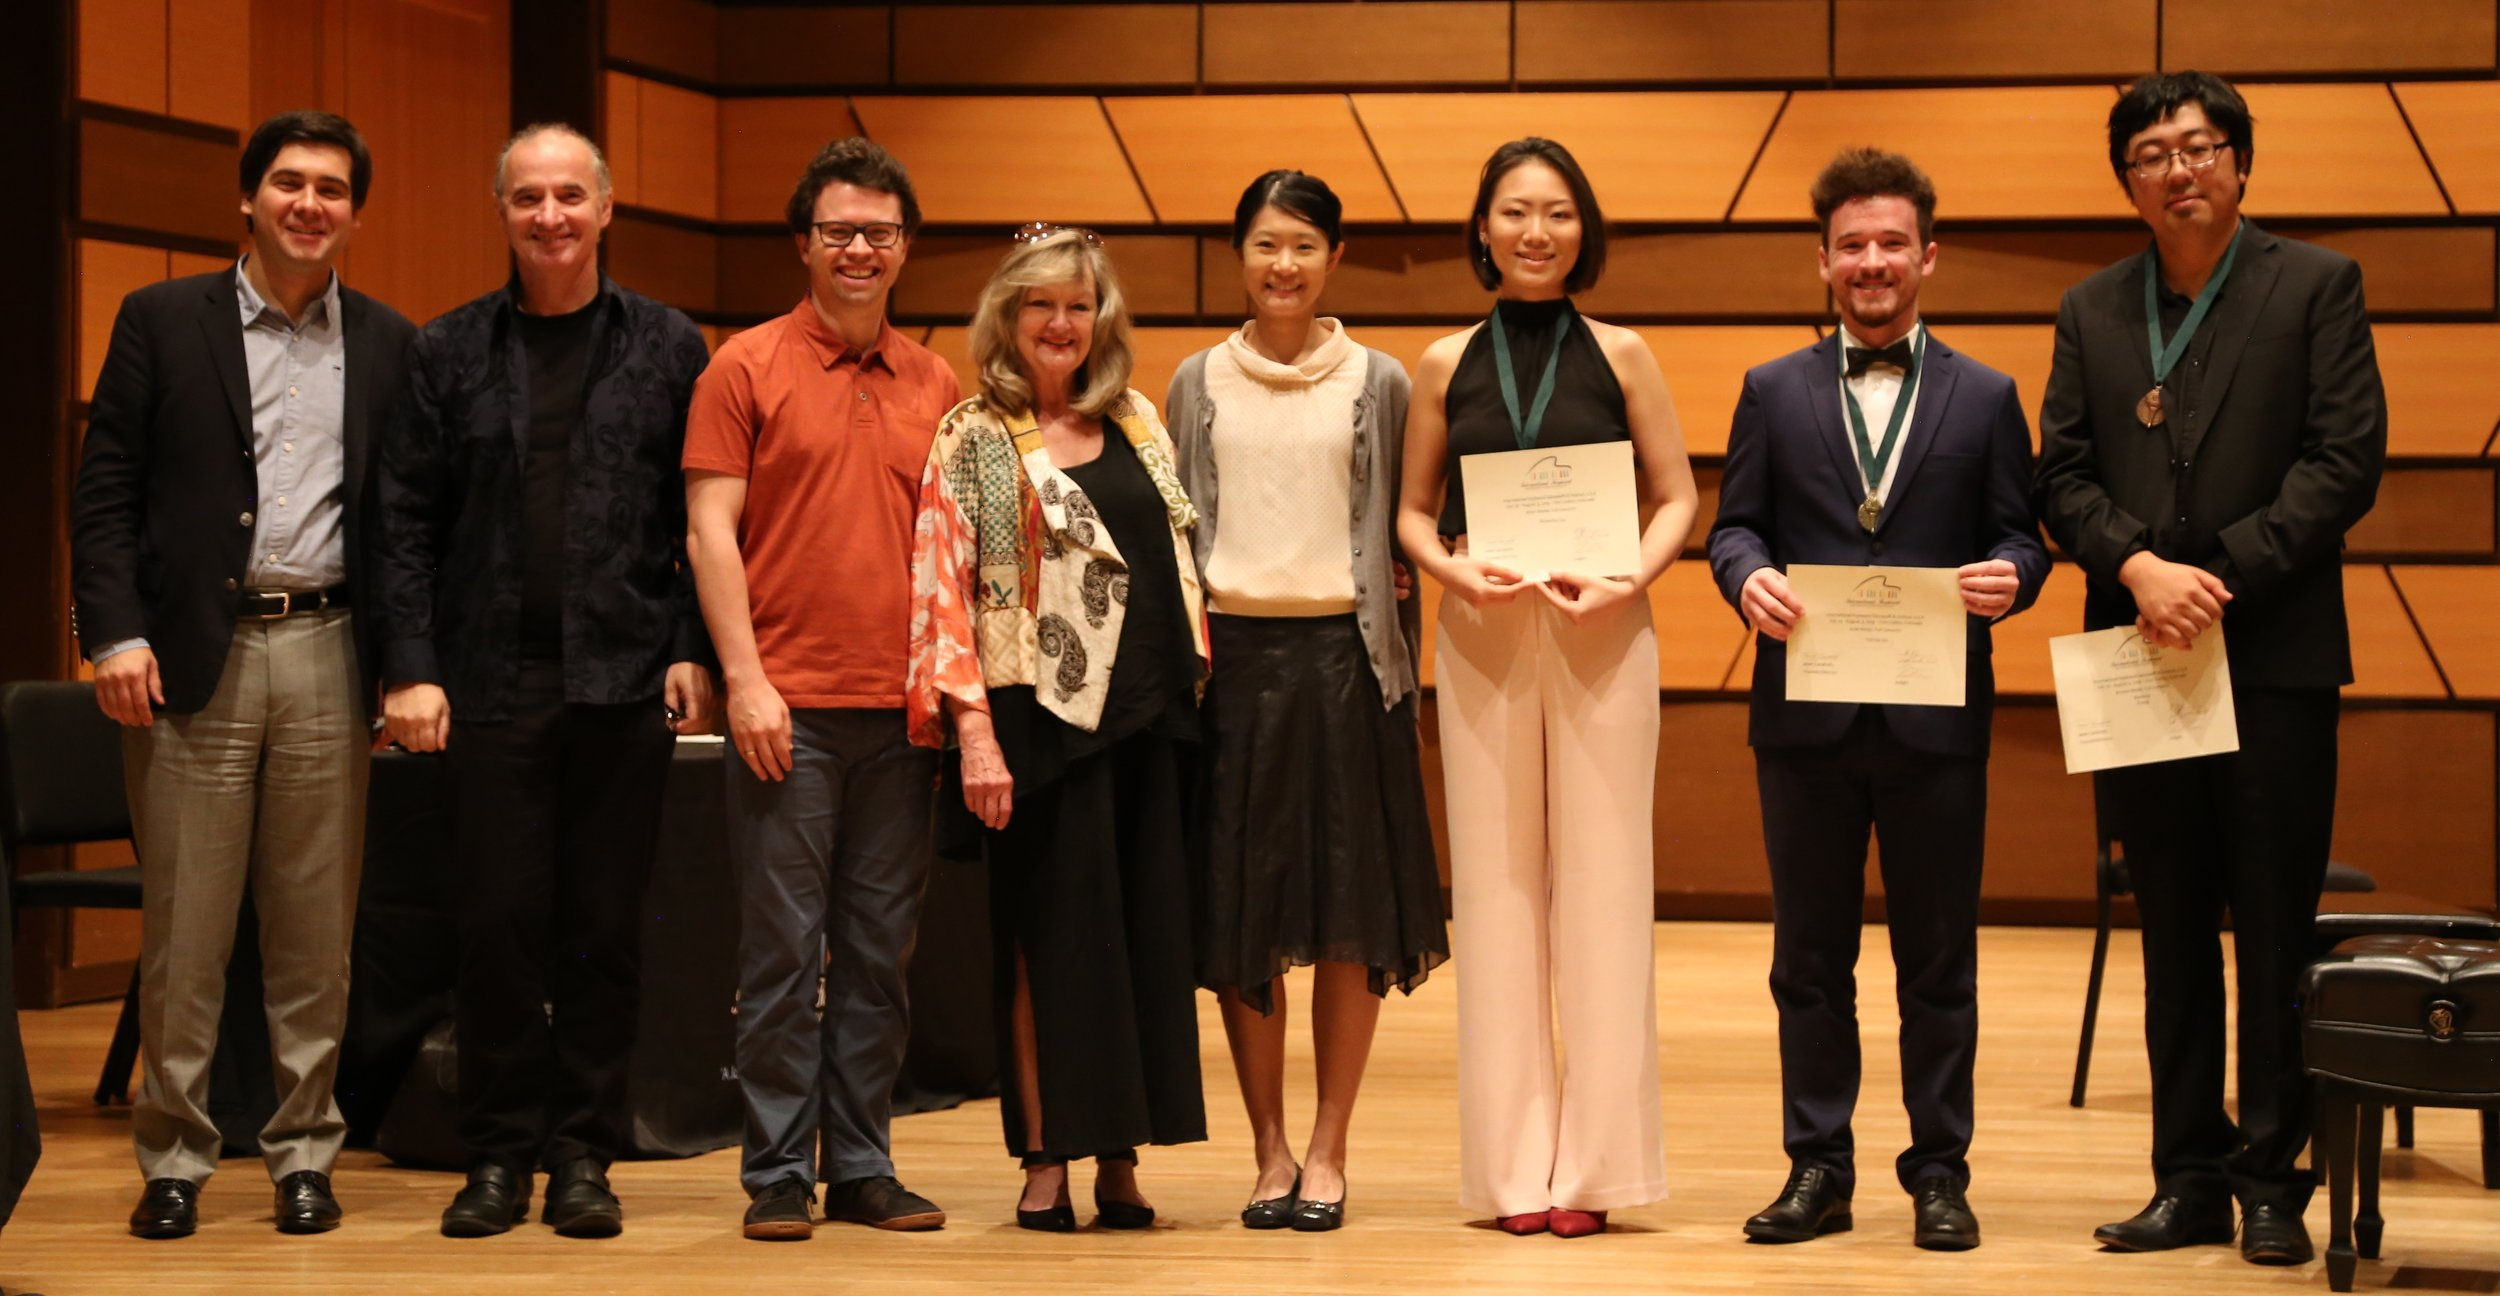 Full Concerto Winners and Judges